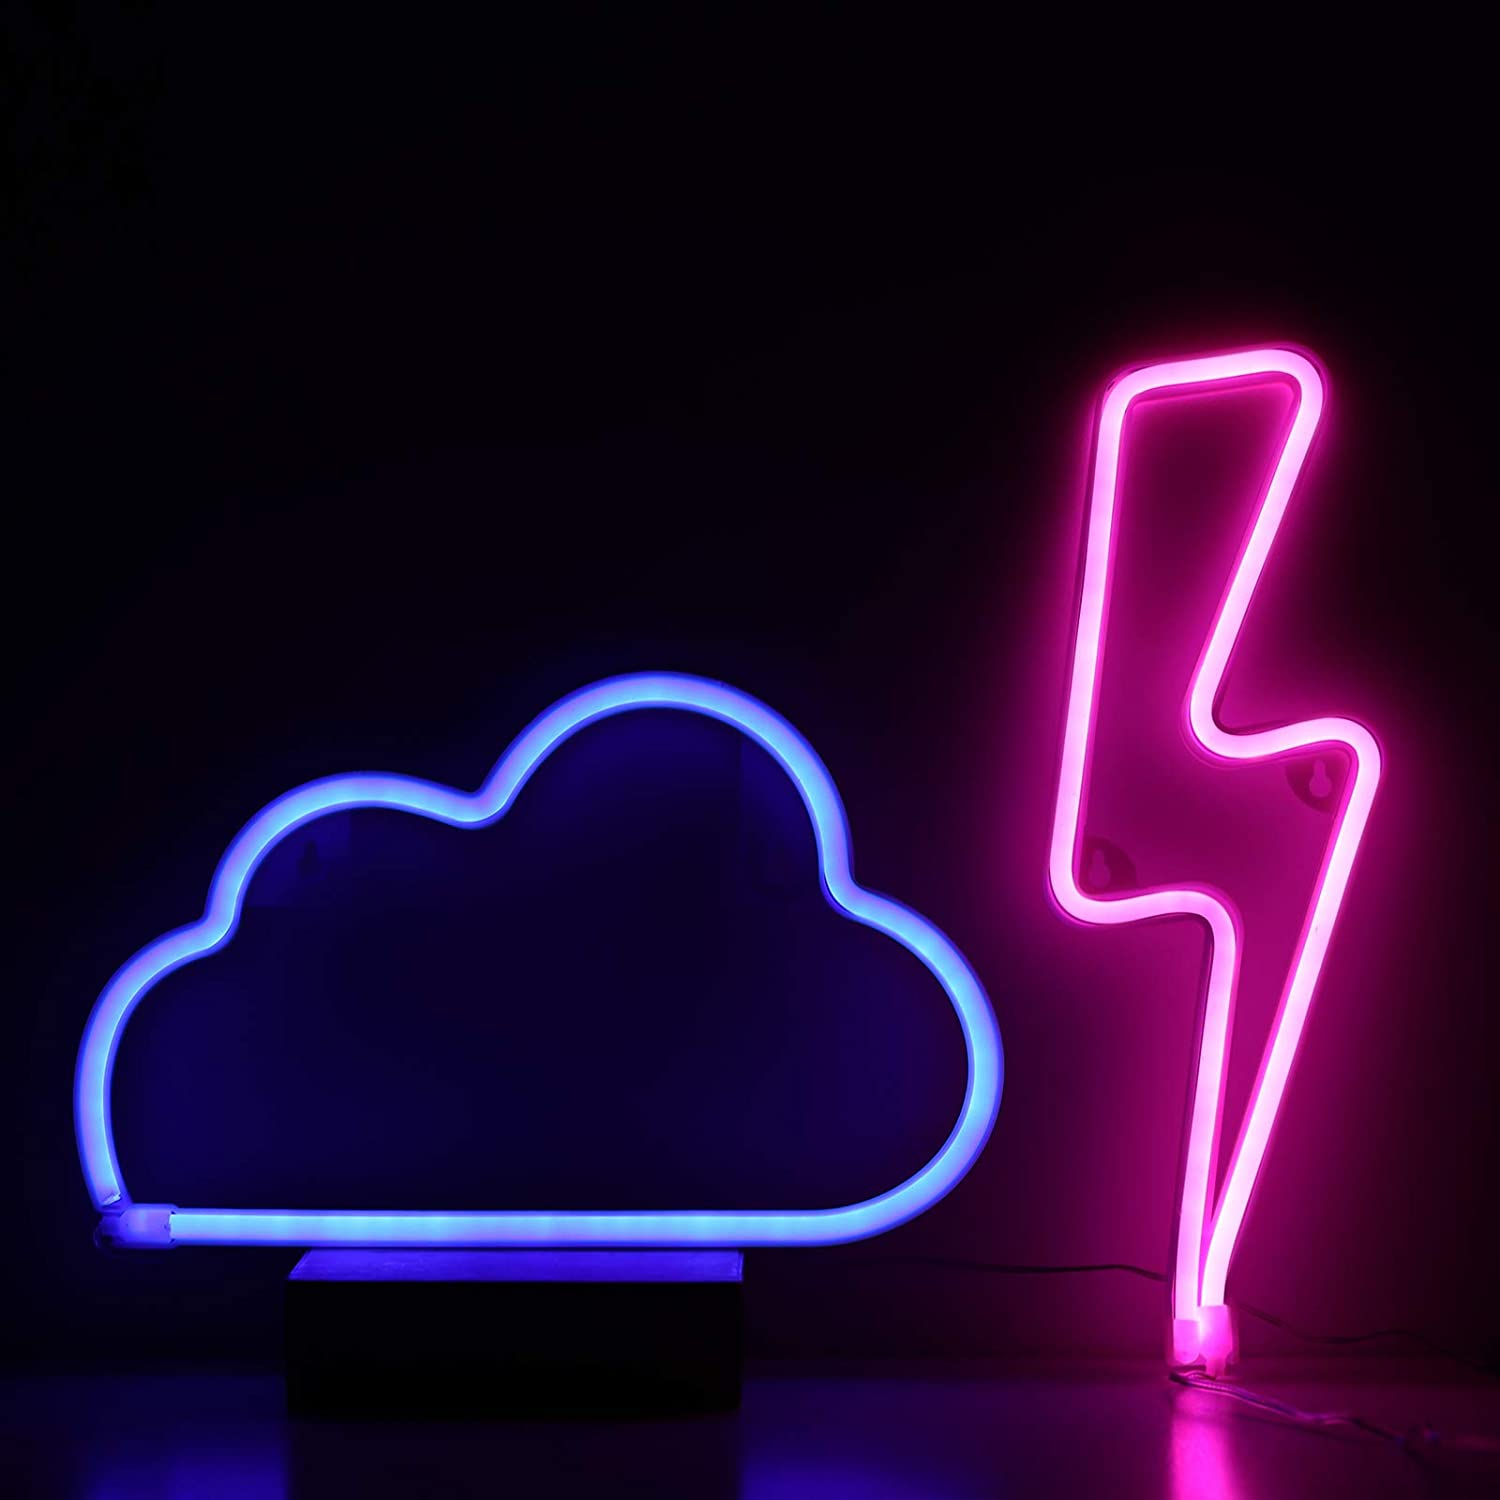 Neon Signs Pink Lightning Bolt+Blue Cloud Light Battery & USB Powered LED Decorative Night Lights Wall Art Decor for Gaming,Man Cave,Kid's Bedroom,Dorm,Bar,Wedding,The Flash Party Decoration(SDF-YDL)